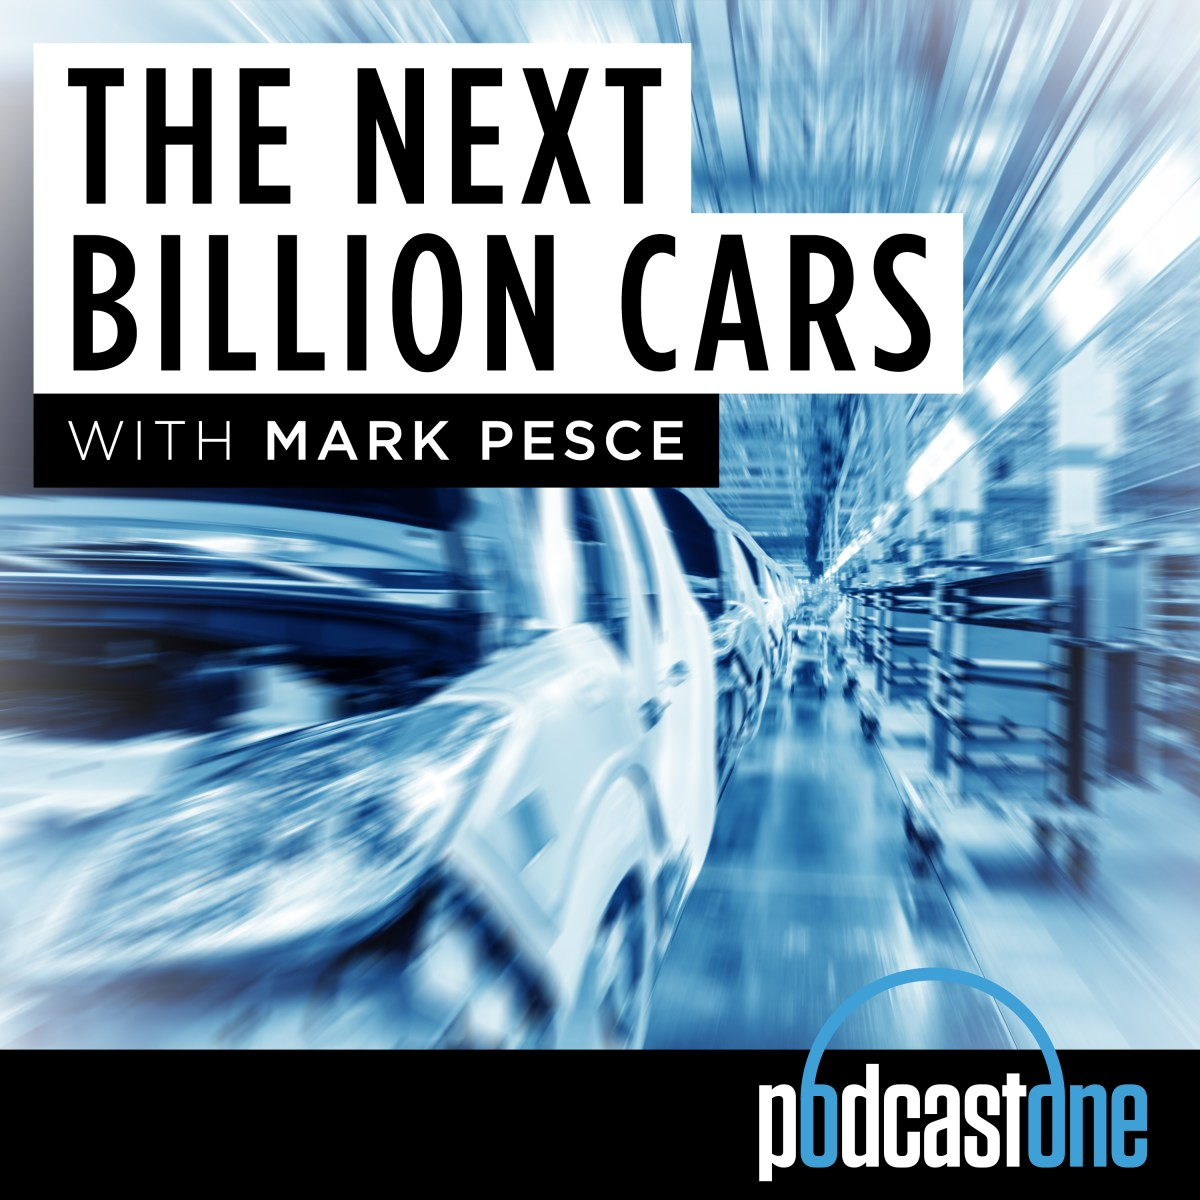 THE NEXT BILLION CARS Episode 8 – The Next Billion Drivers